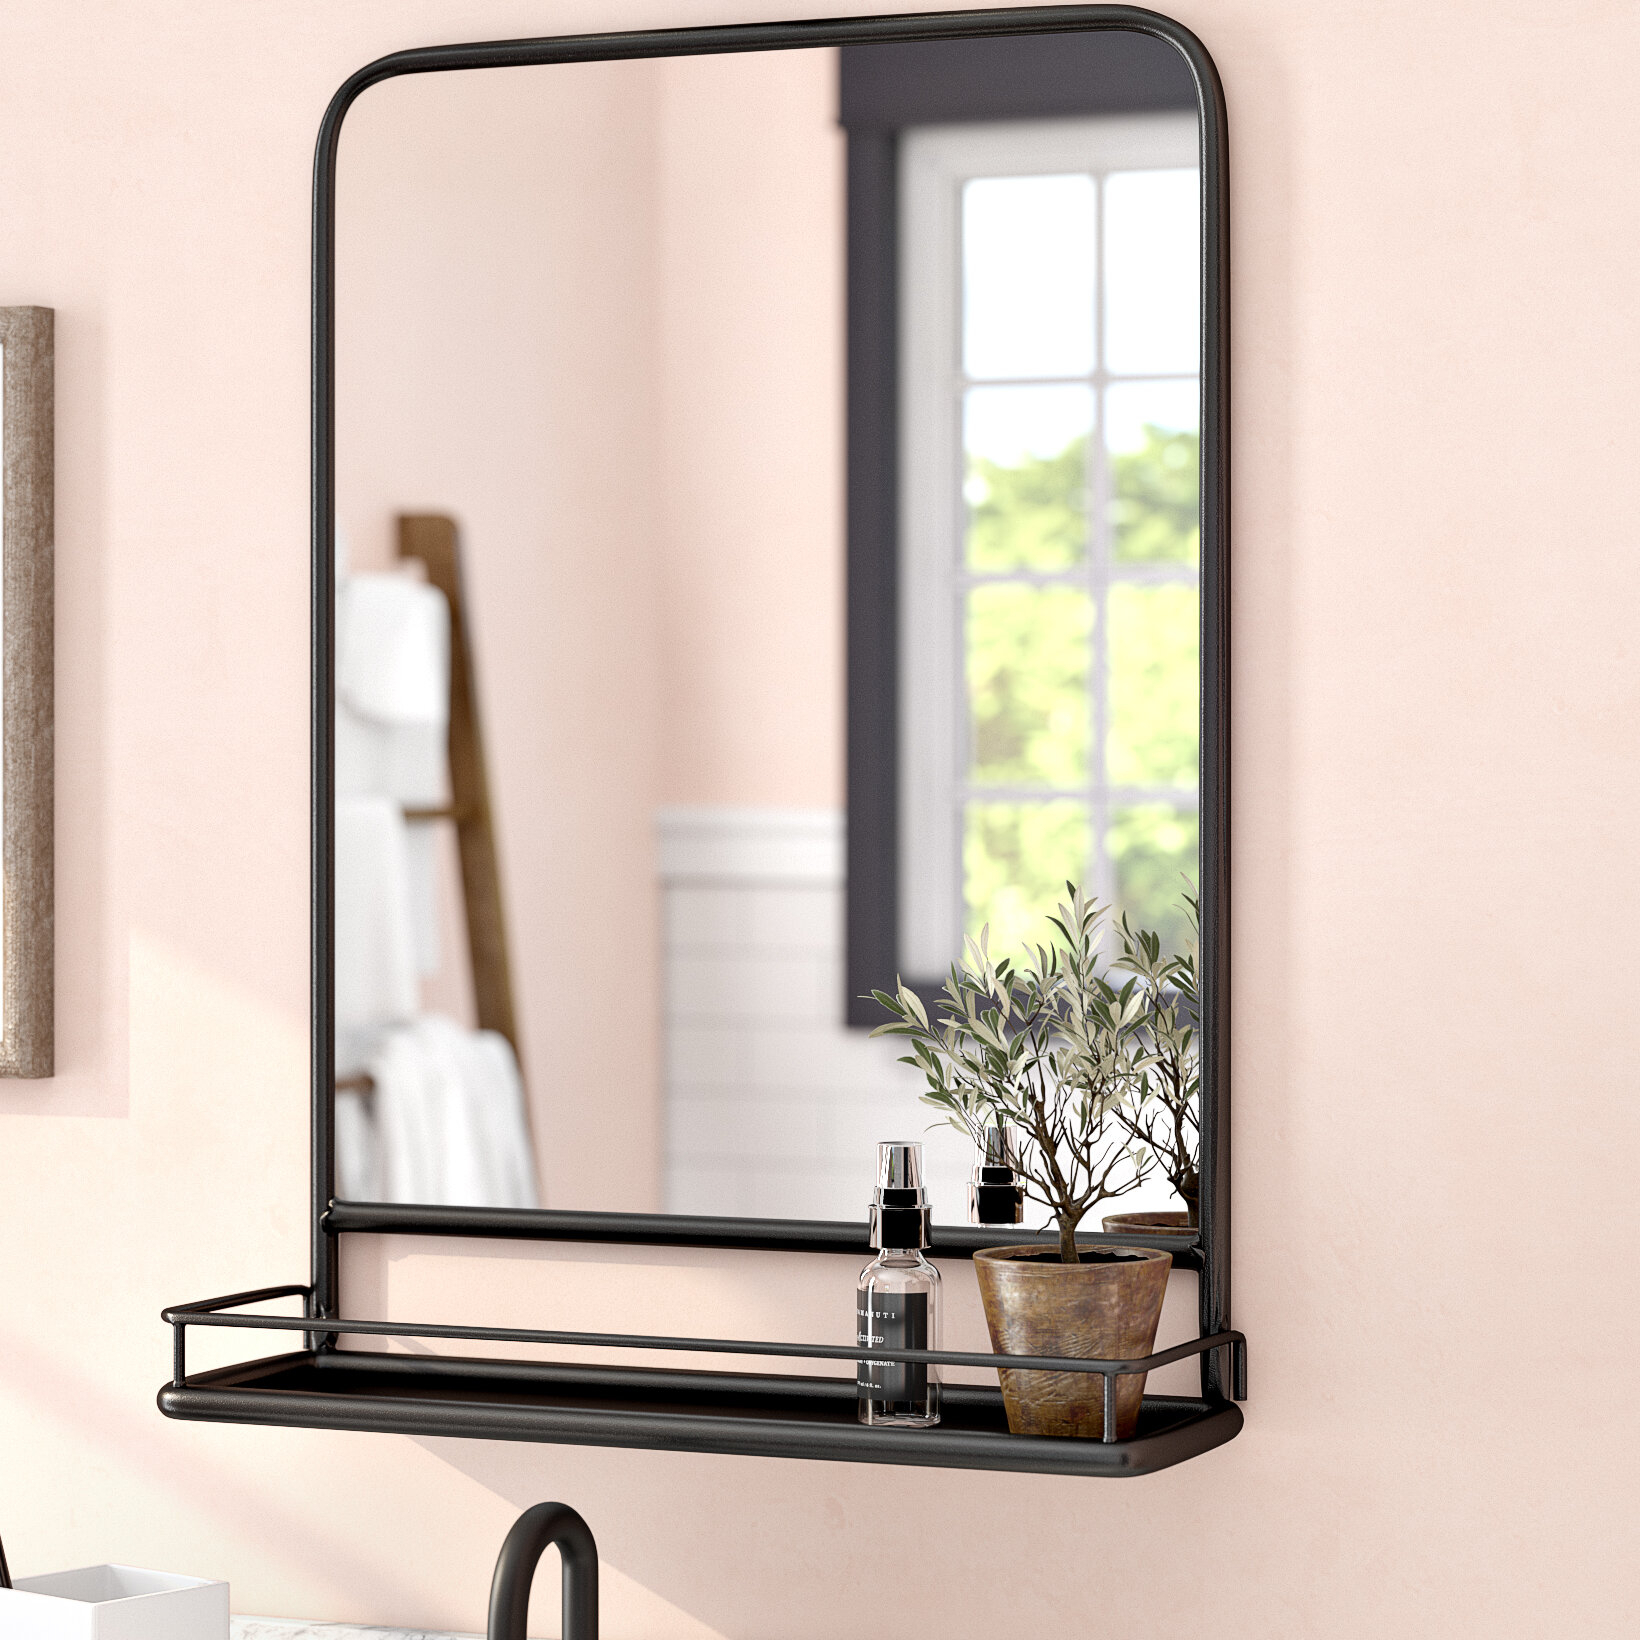 Mirrors With Shelves & Drawers You'll Love In 2019 | Wayfair With Regard To Hallas Wall Organizer Mirrors (Image 13 of 20)